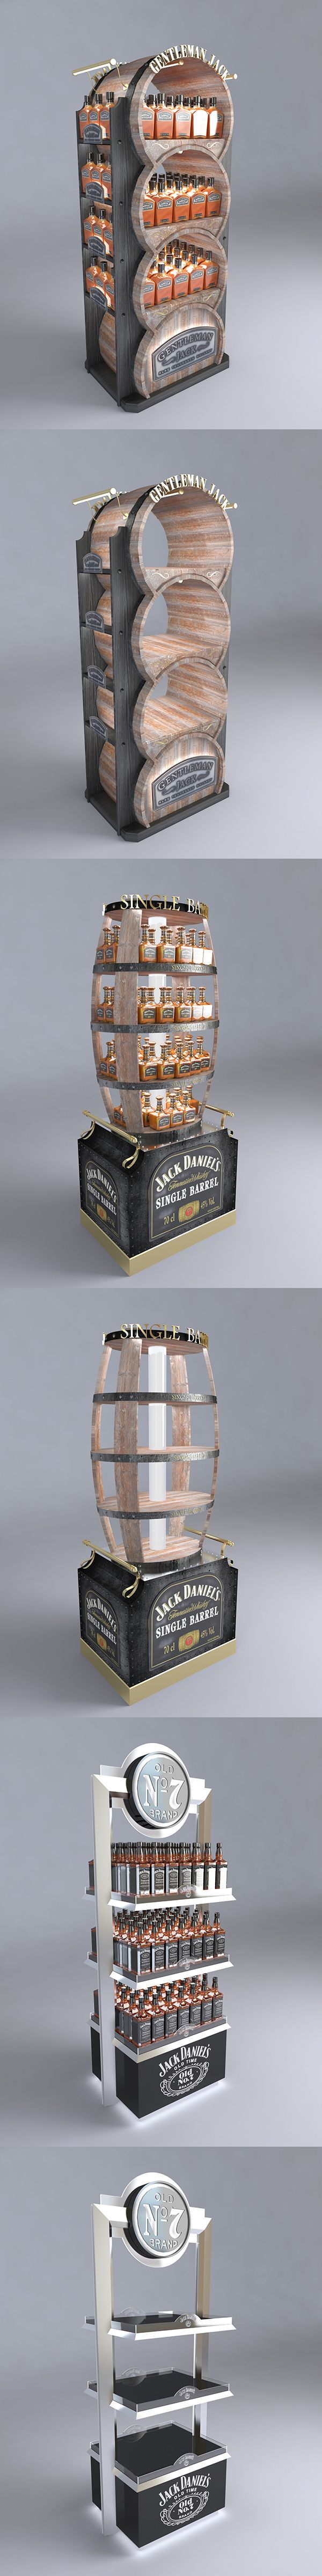 Jack Daniel's stand 2013 on Behance